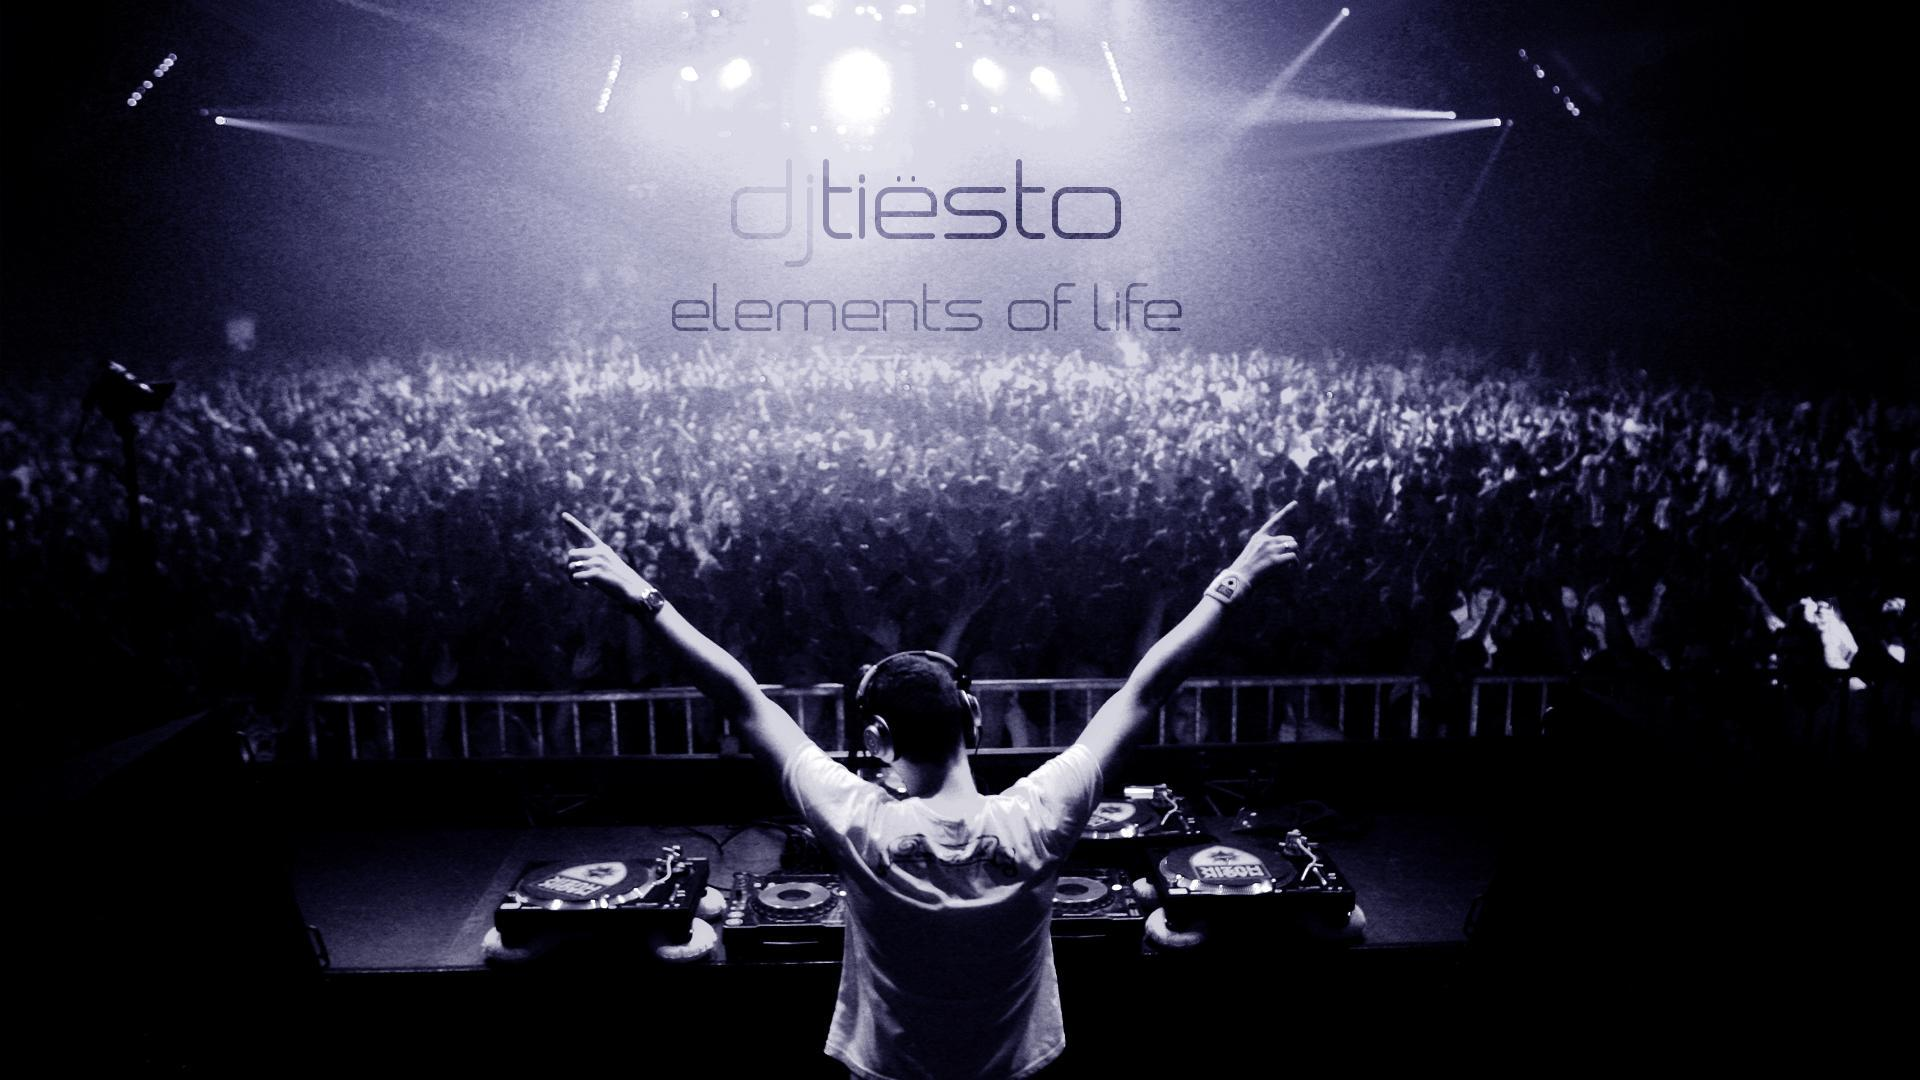 Tiesto Wallpapers 2016 1920x1080